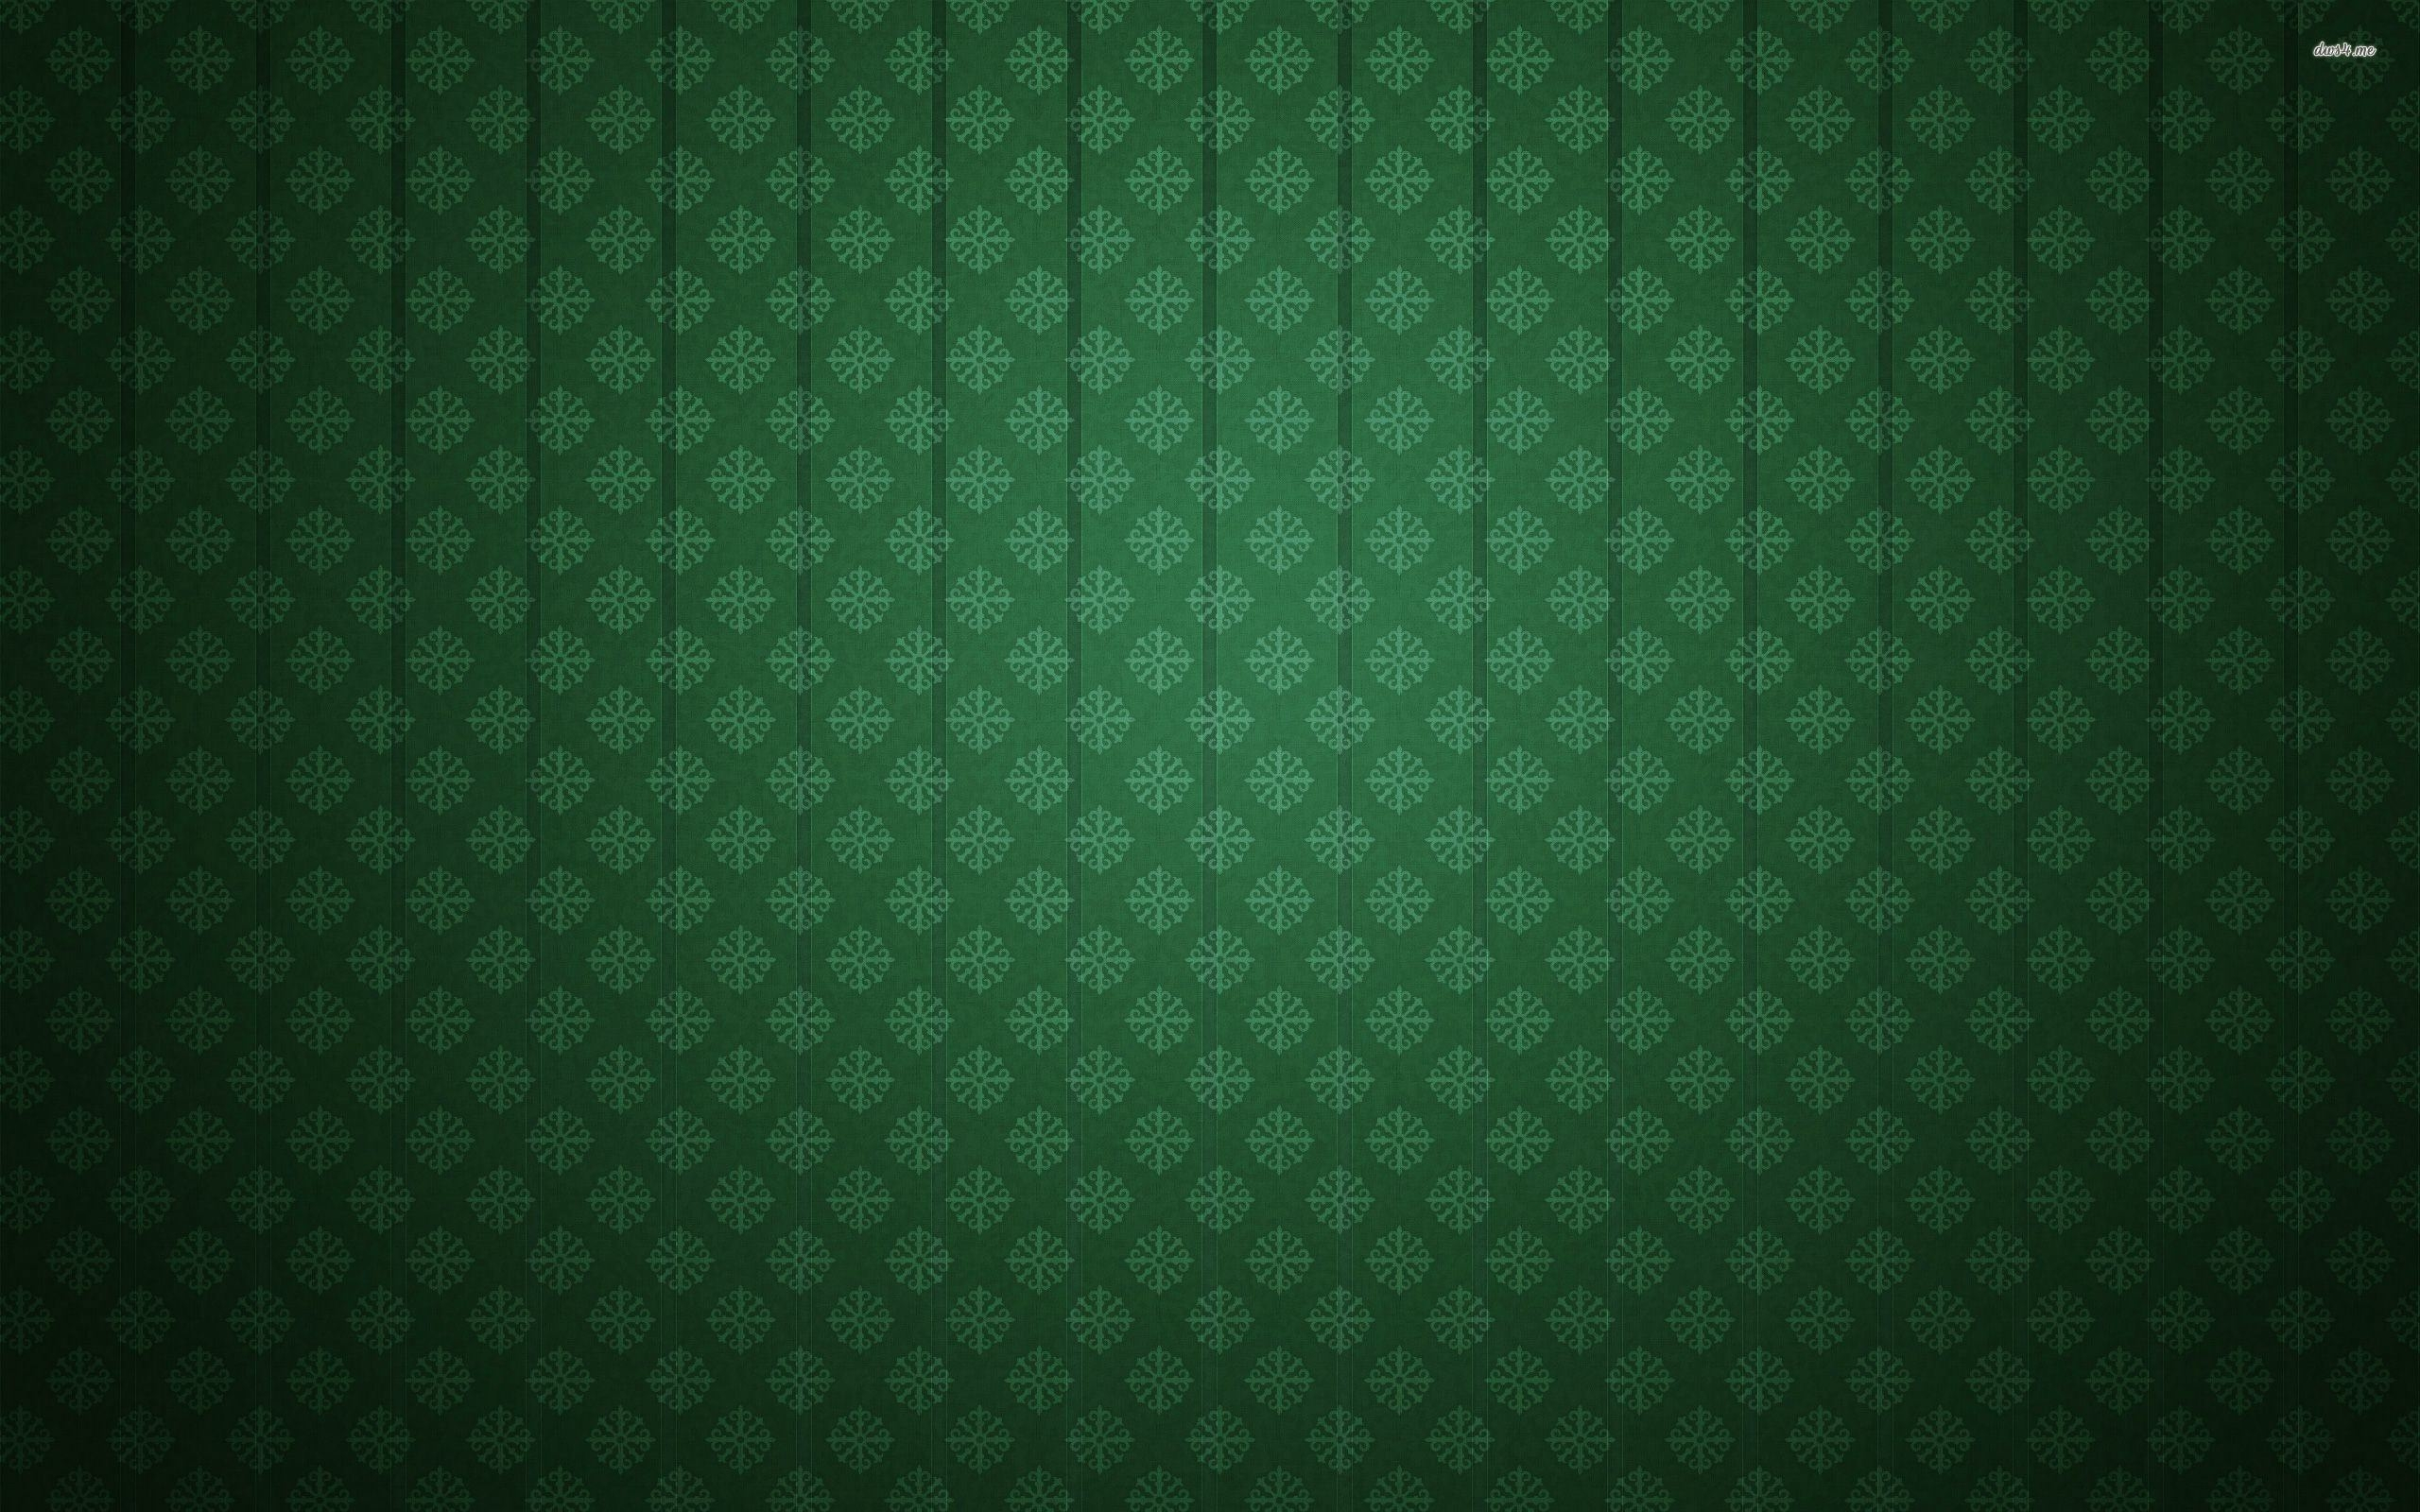 Green Floral High Res Wallpaper Pattern